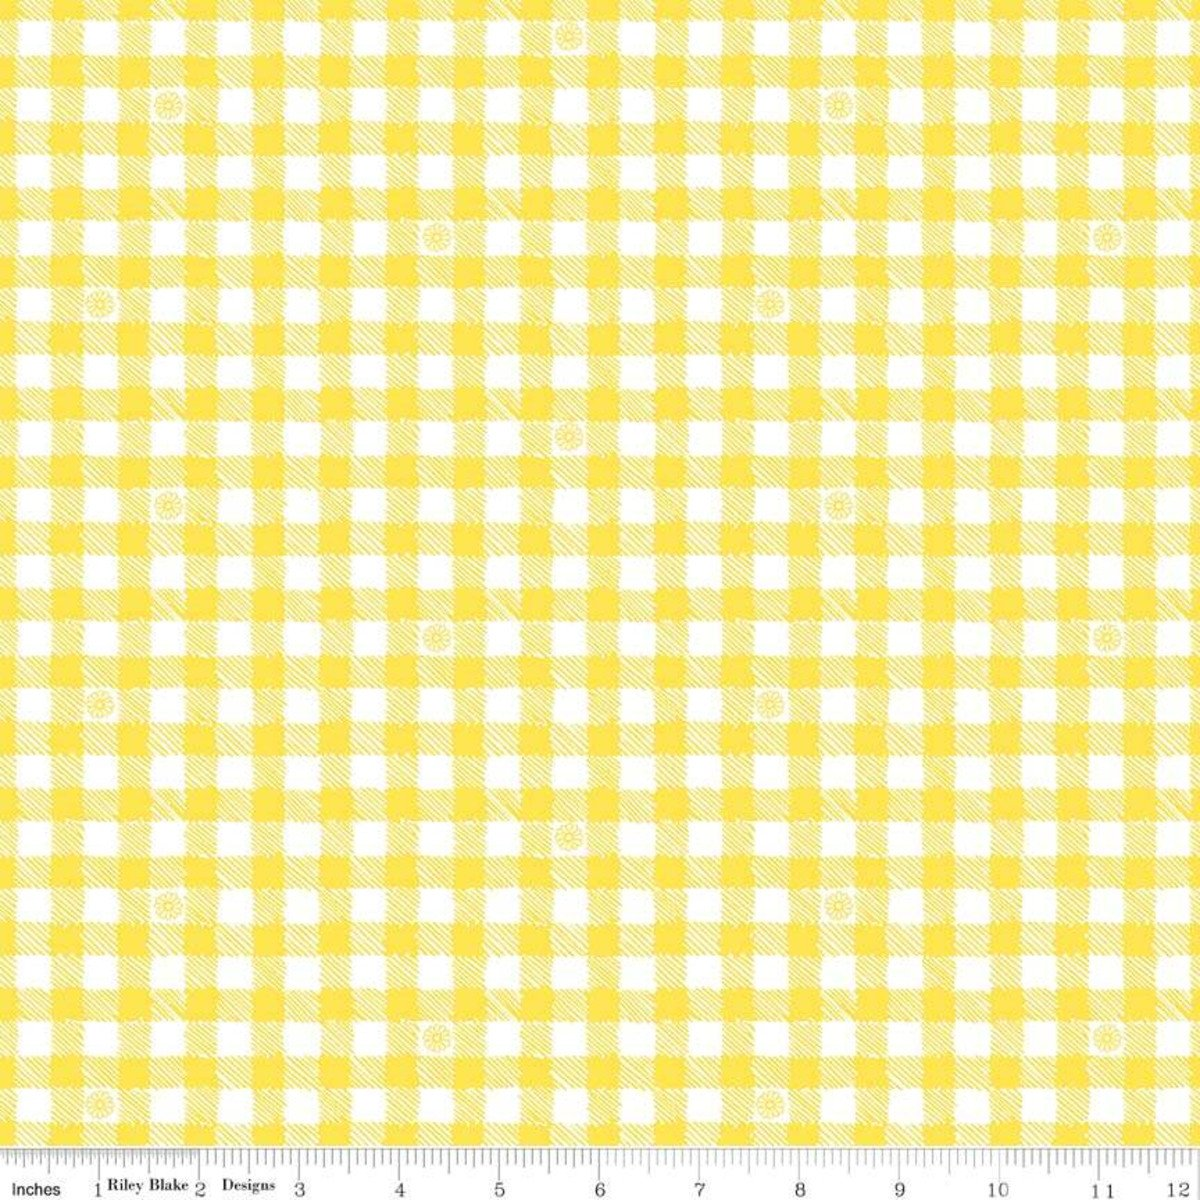 Honey Run by Jill Finley Yellow gingham with bees